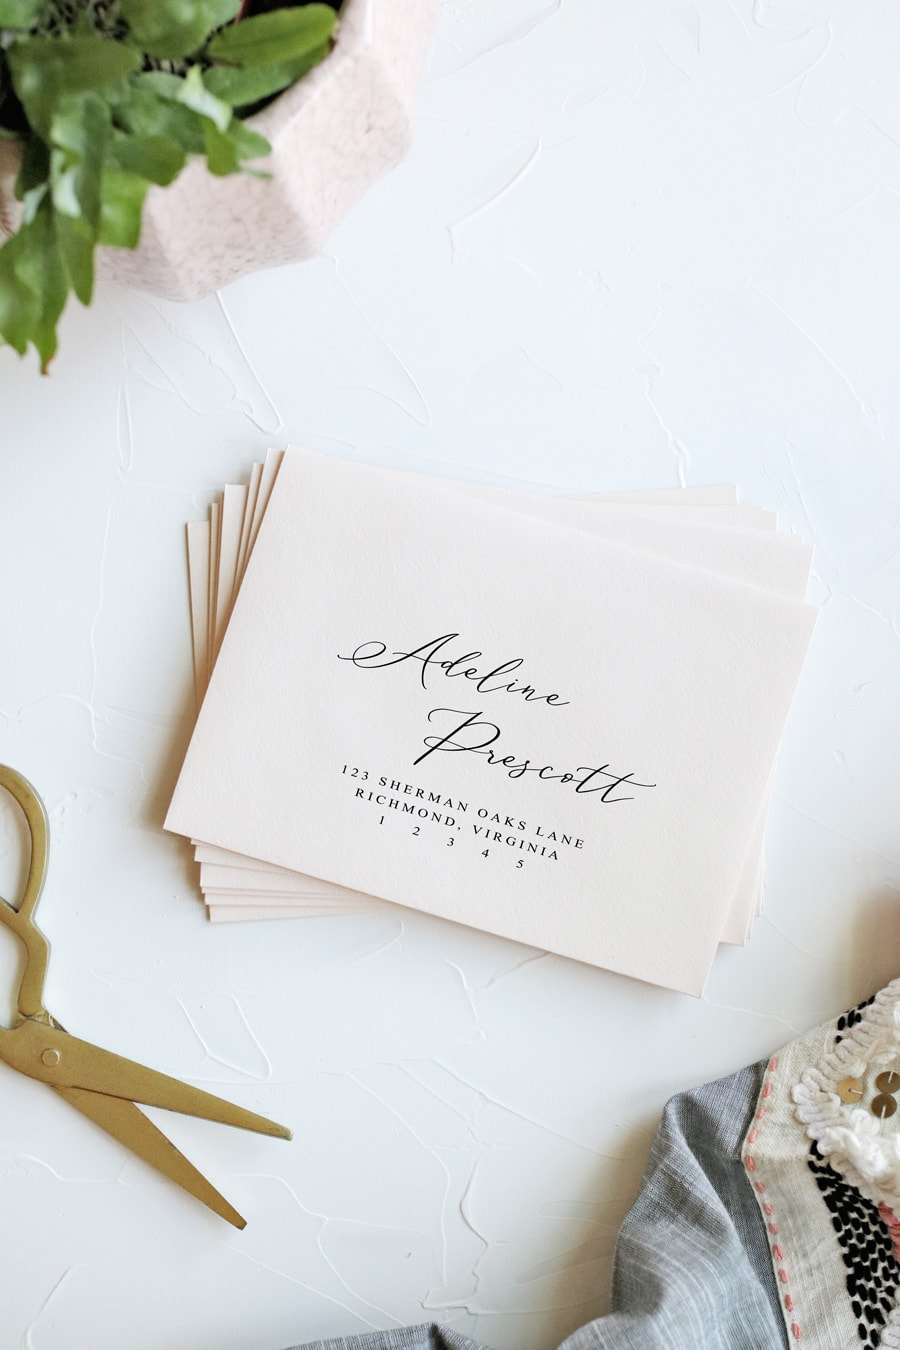 HOW TO PRINT ENVELOPES THE EASY WAY | Pipkin Paper Company